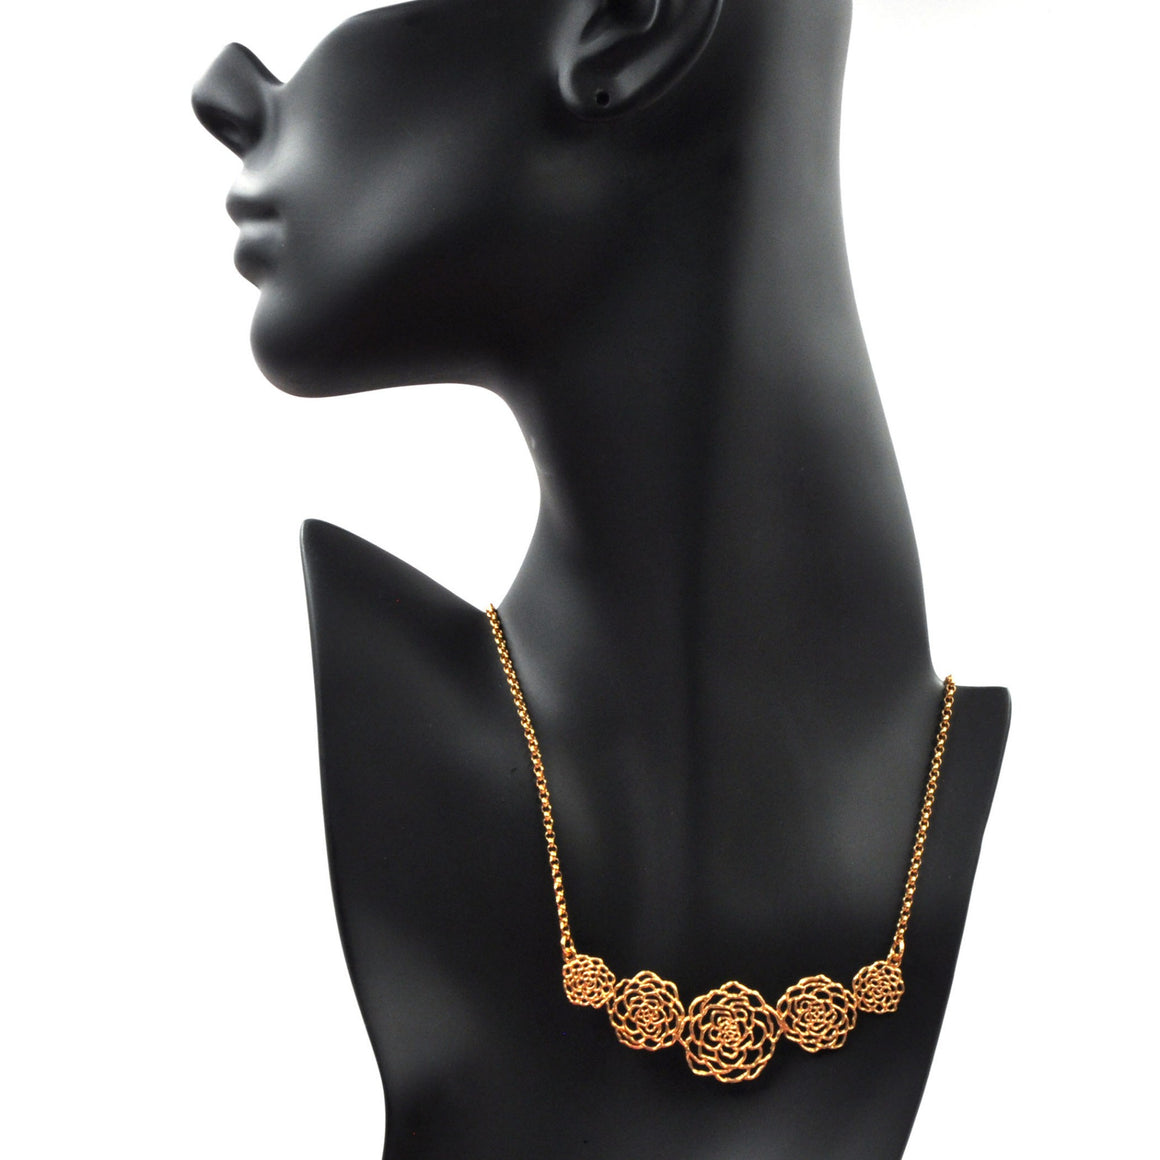 Rose Collar Necklace - 24K Gold Plated